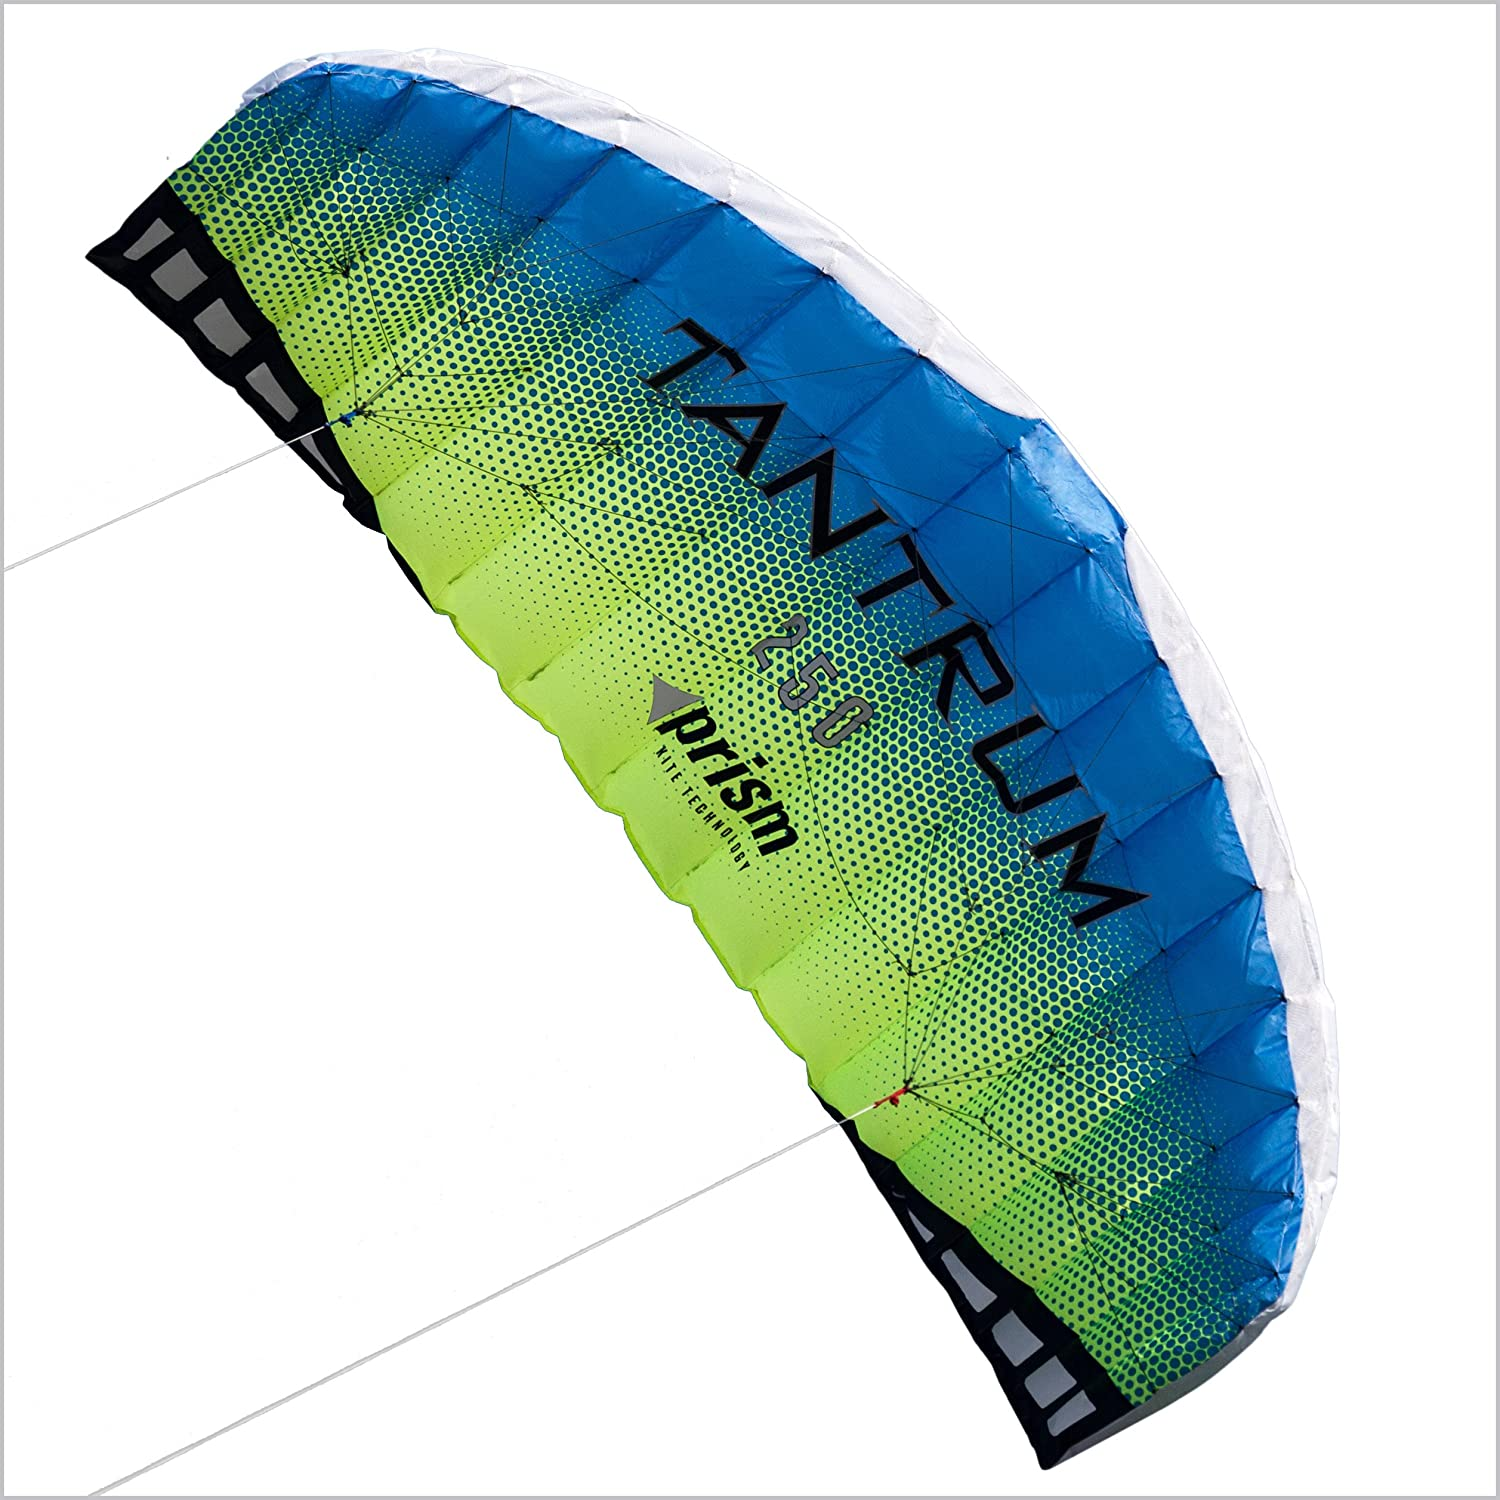 Prism Kite Technology Tantrum Kites Prism Designs tt75-P